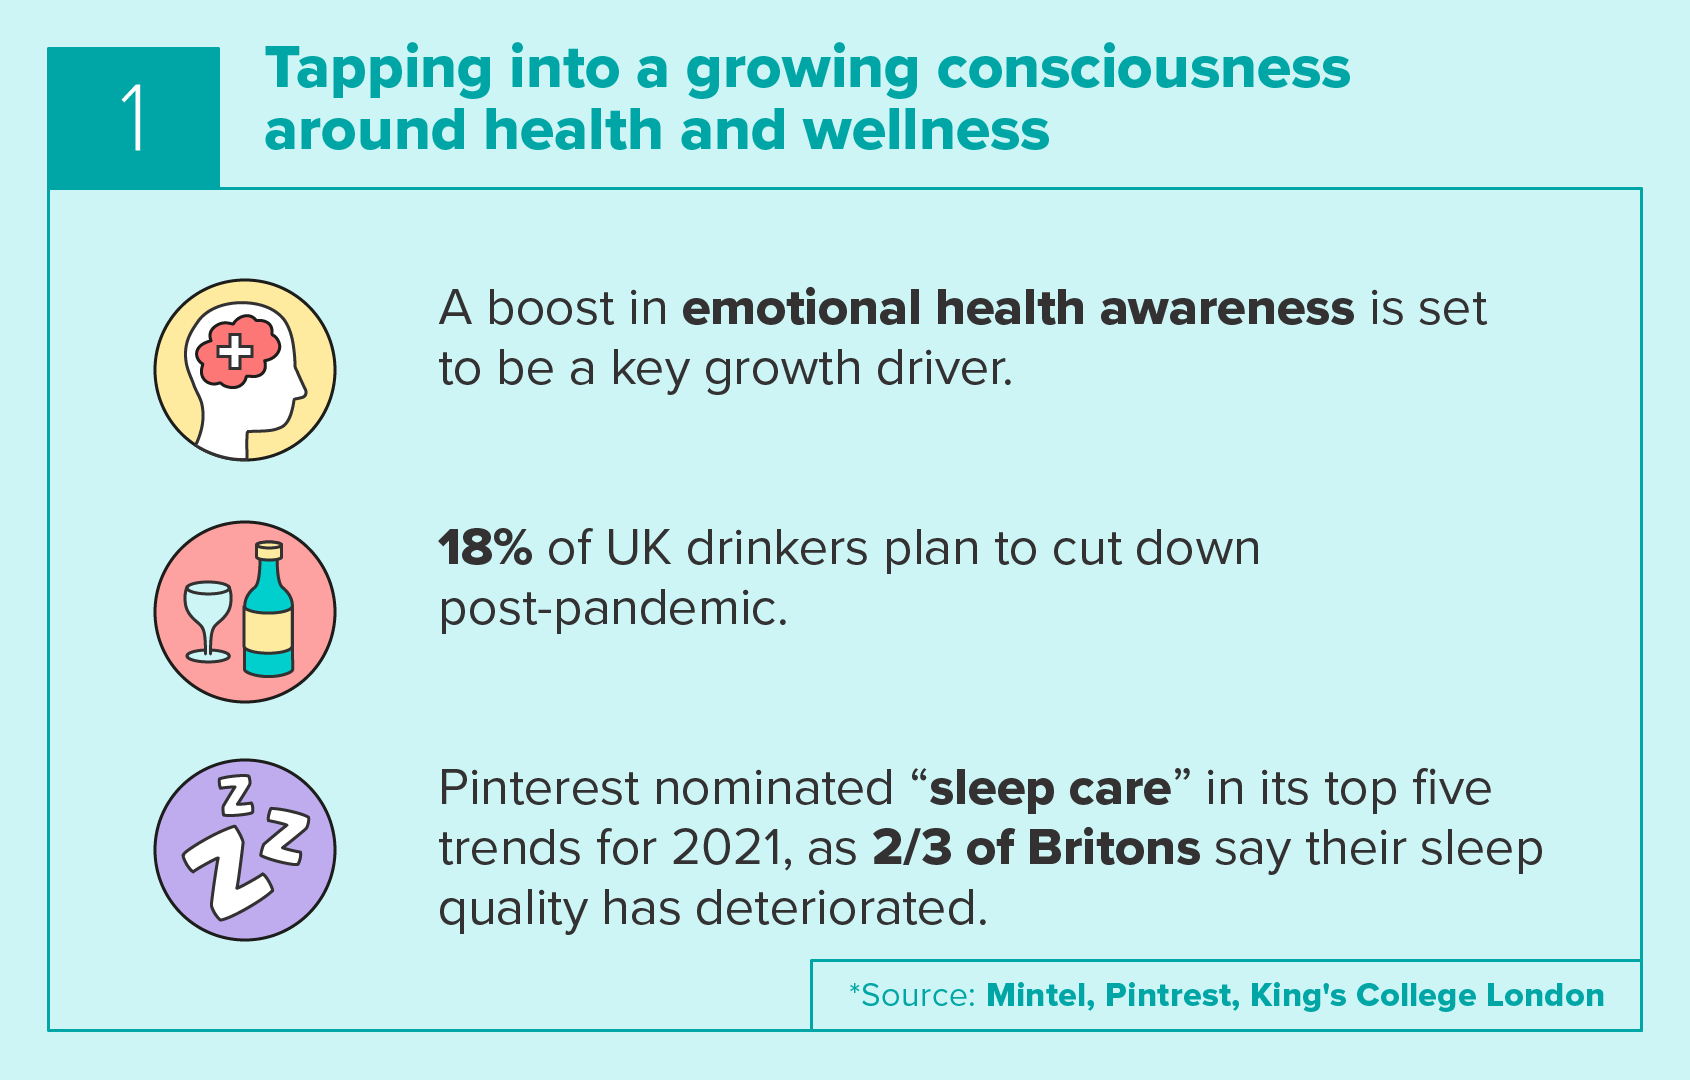 Tapping into a growing consciousness around health and wellness